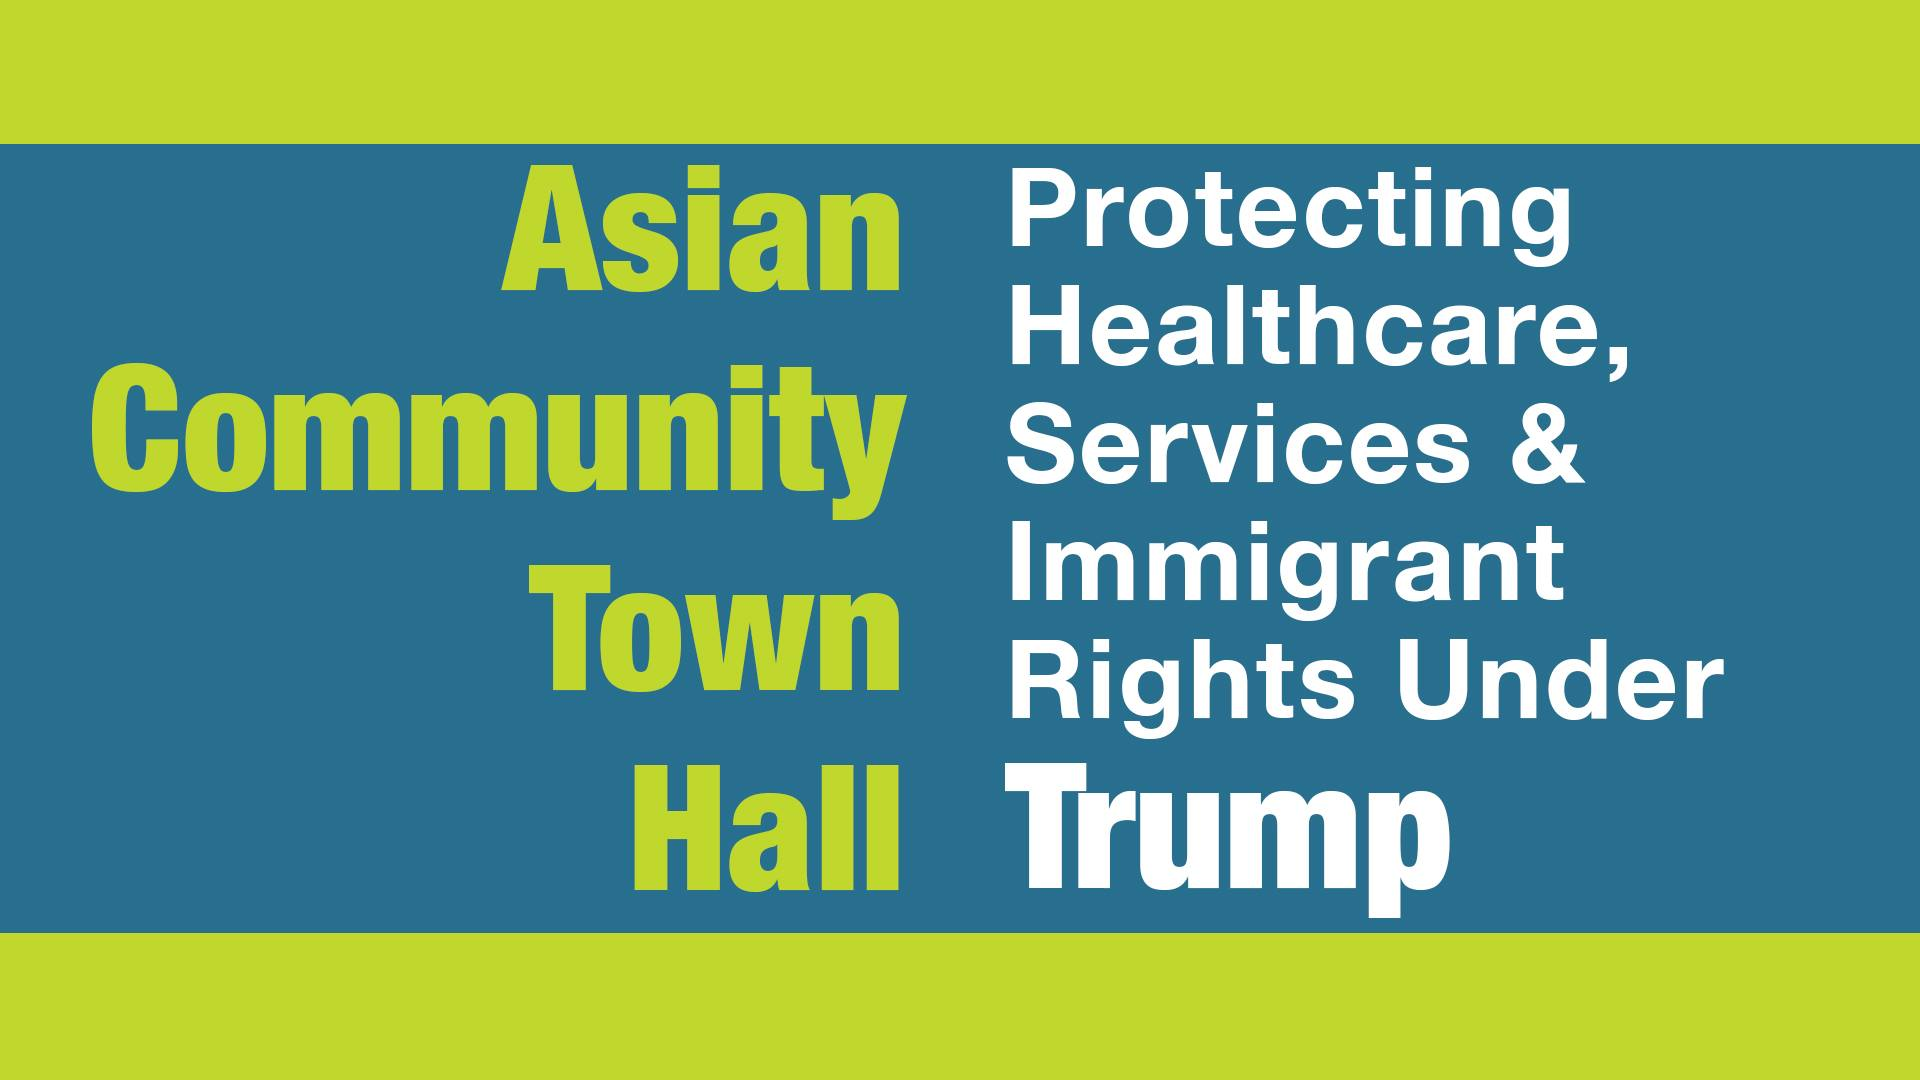 This Thursday: Asian Community Town Hall